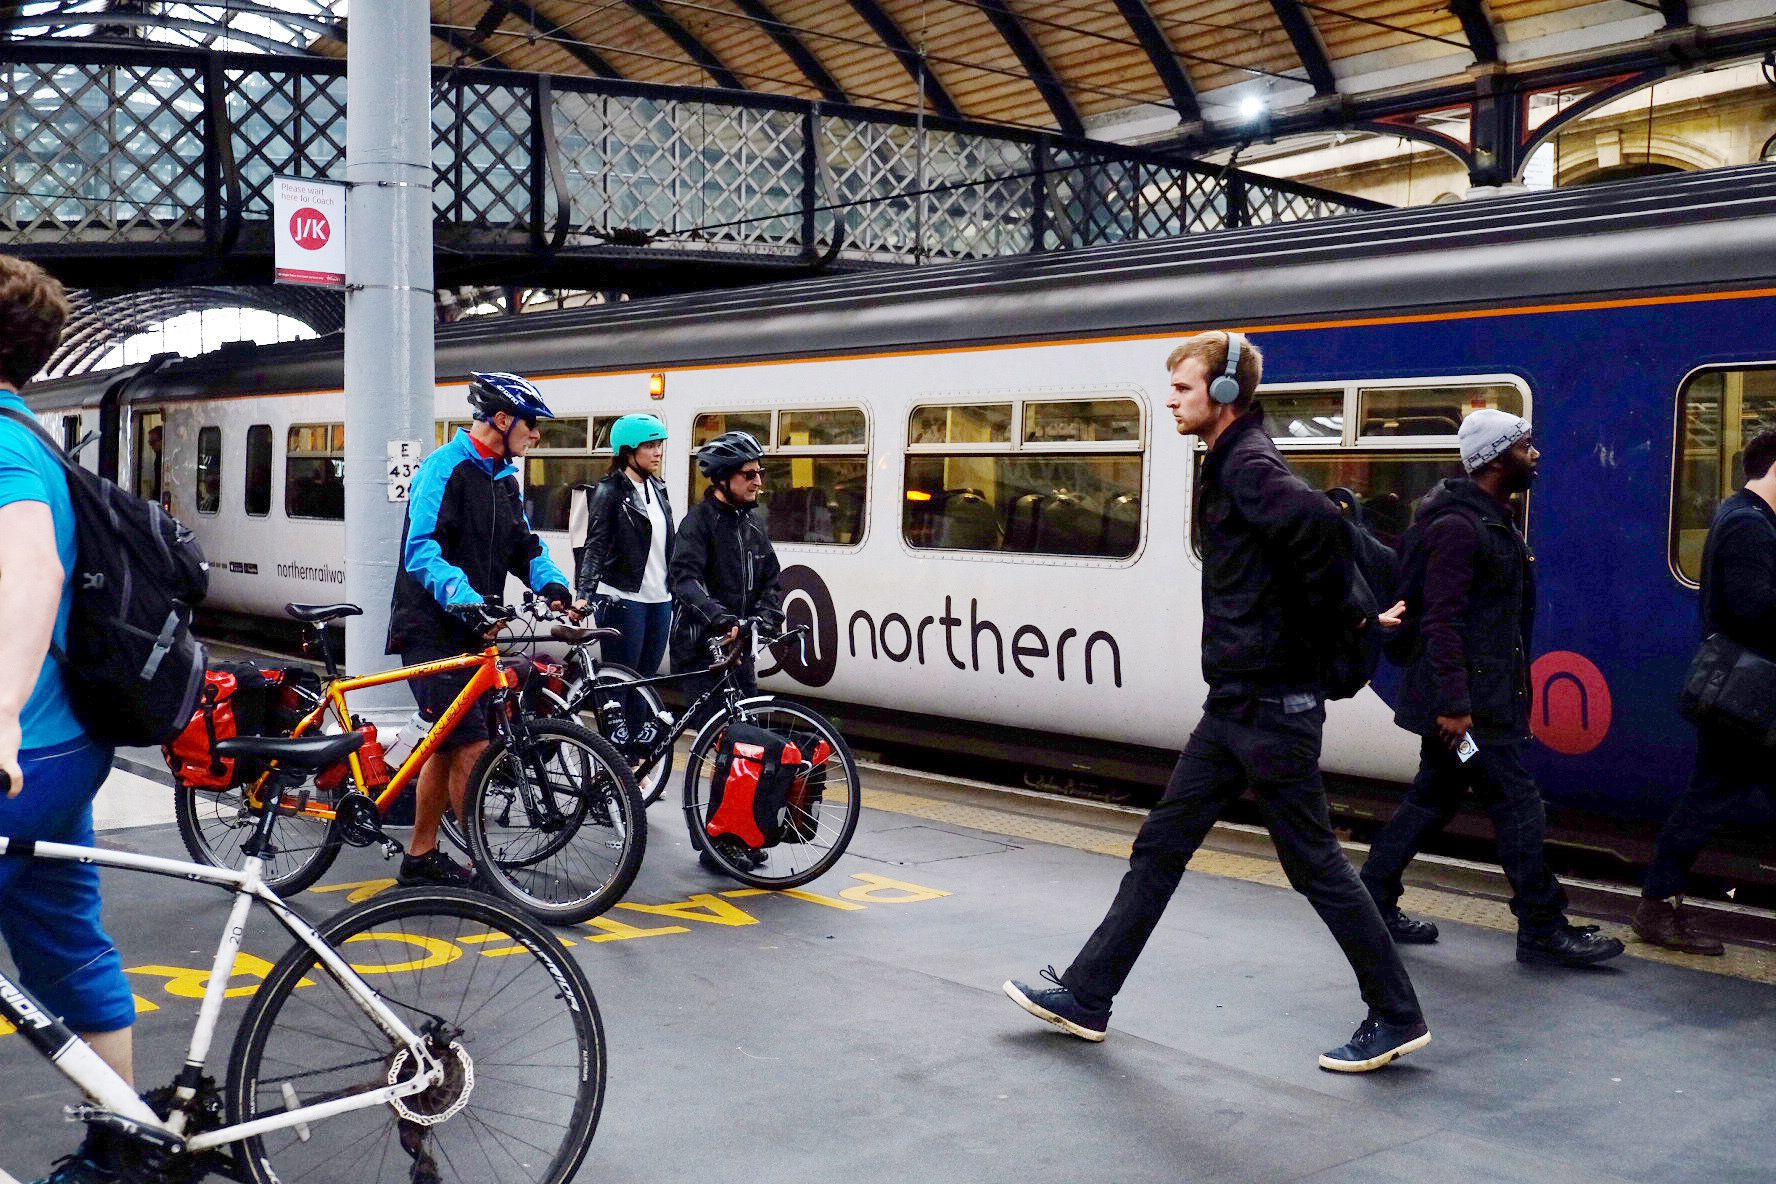 Getting A Northern Train Today? There's A Strike On So Check This